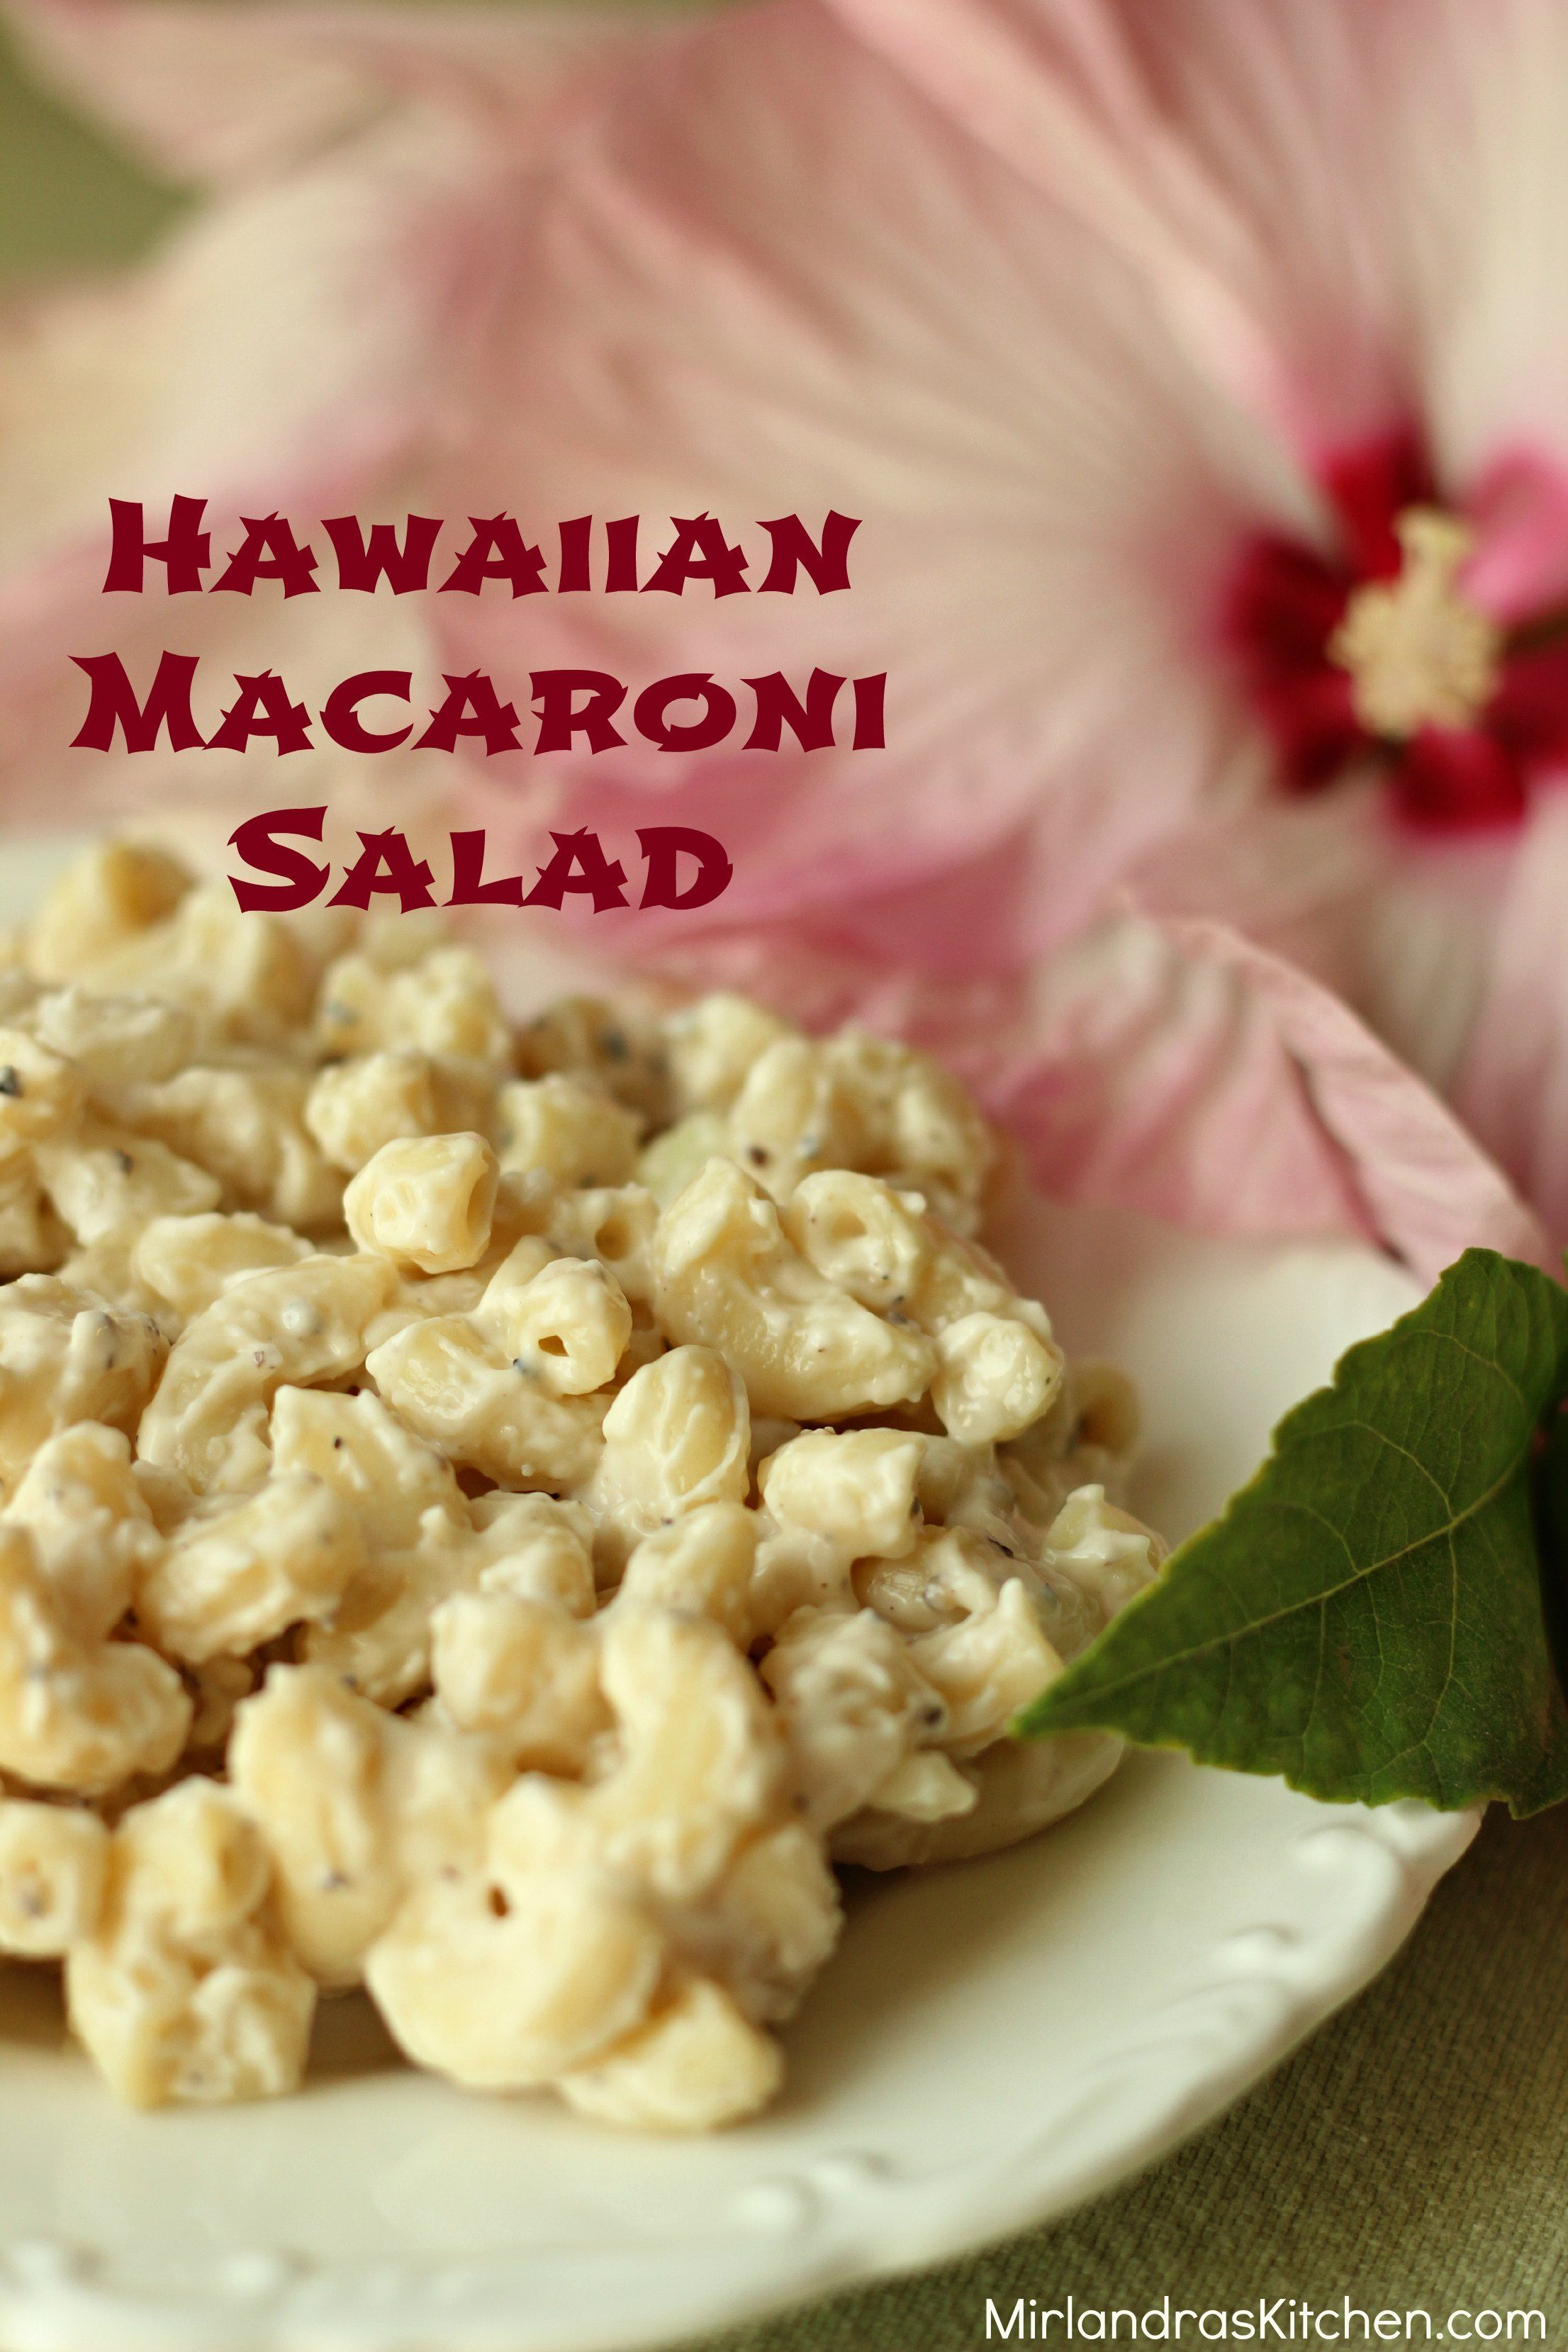 Macaroni Salad This Mac Salad is our all time favorite.  It is the perfect companion for all things grill!  I take to parties all summer long and every time people ask for the recipe.  It's creamy, not gooey and has a fresh, playful flavor.This Mac Salad is our all time favorite.  It is the perfect companion for all things grill!  I take to parties all ...